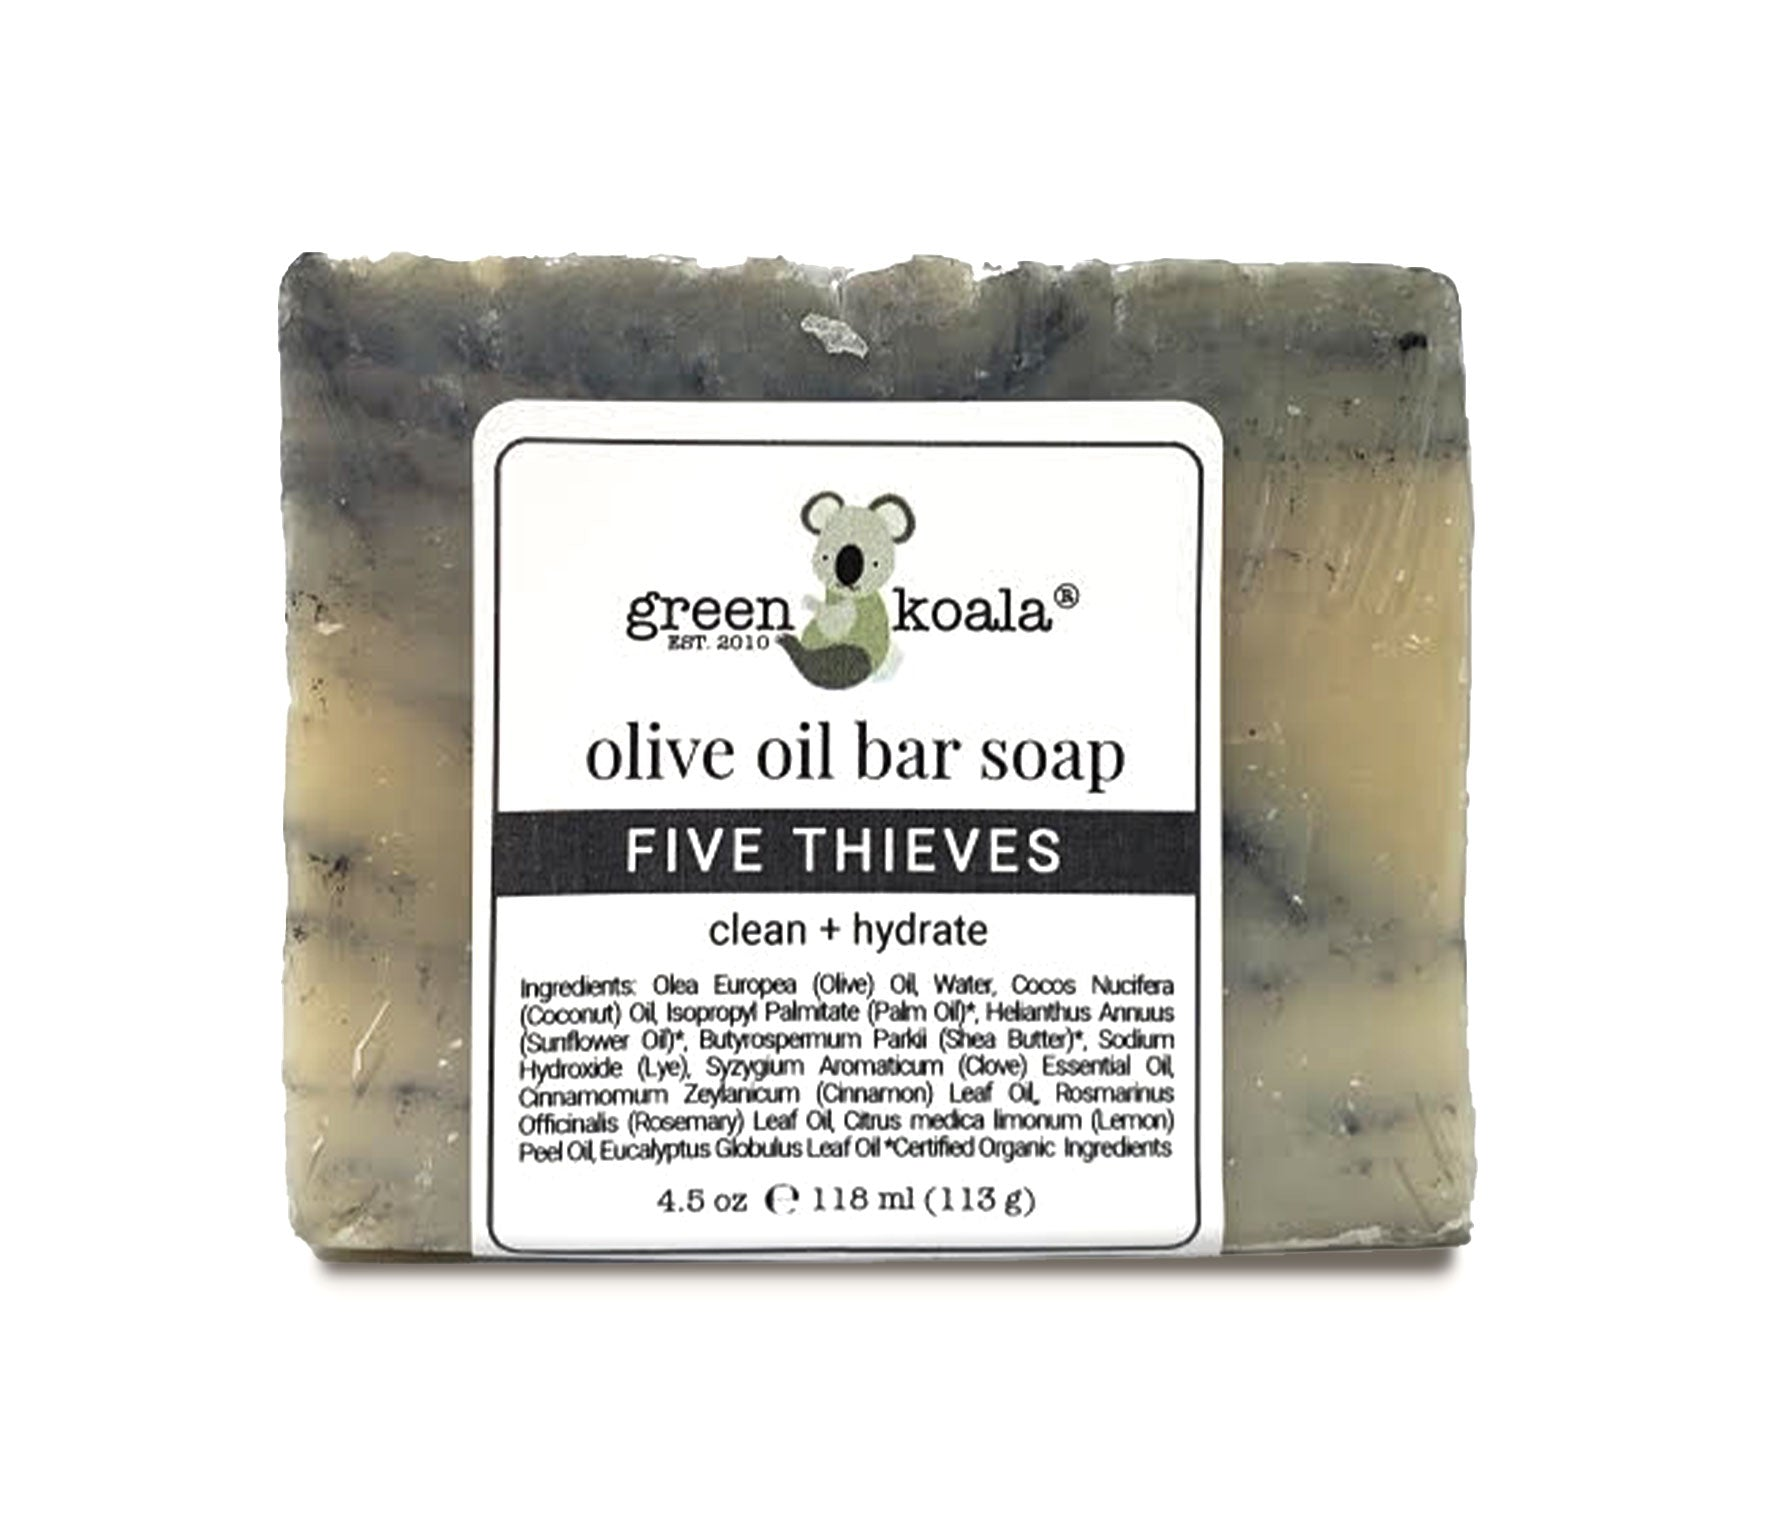 Natural Five Thieves Olive Oil Bar Soap Individual Bar Soap. Beige with gray marbling throughout.